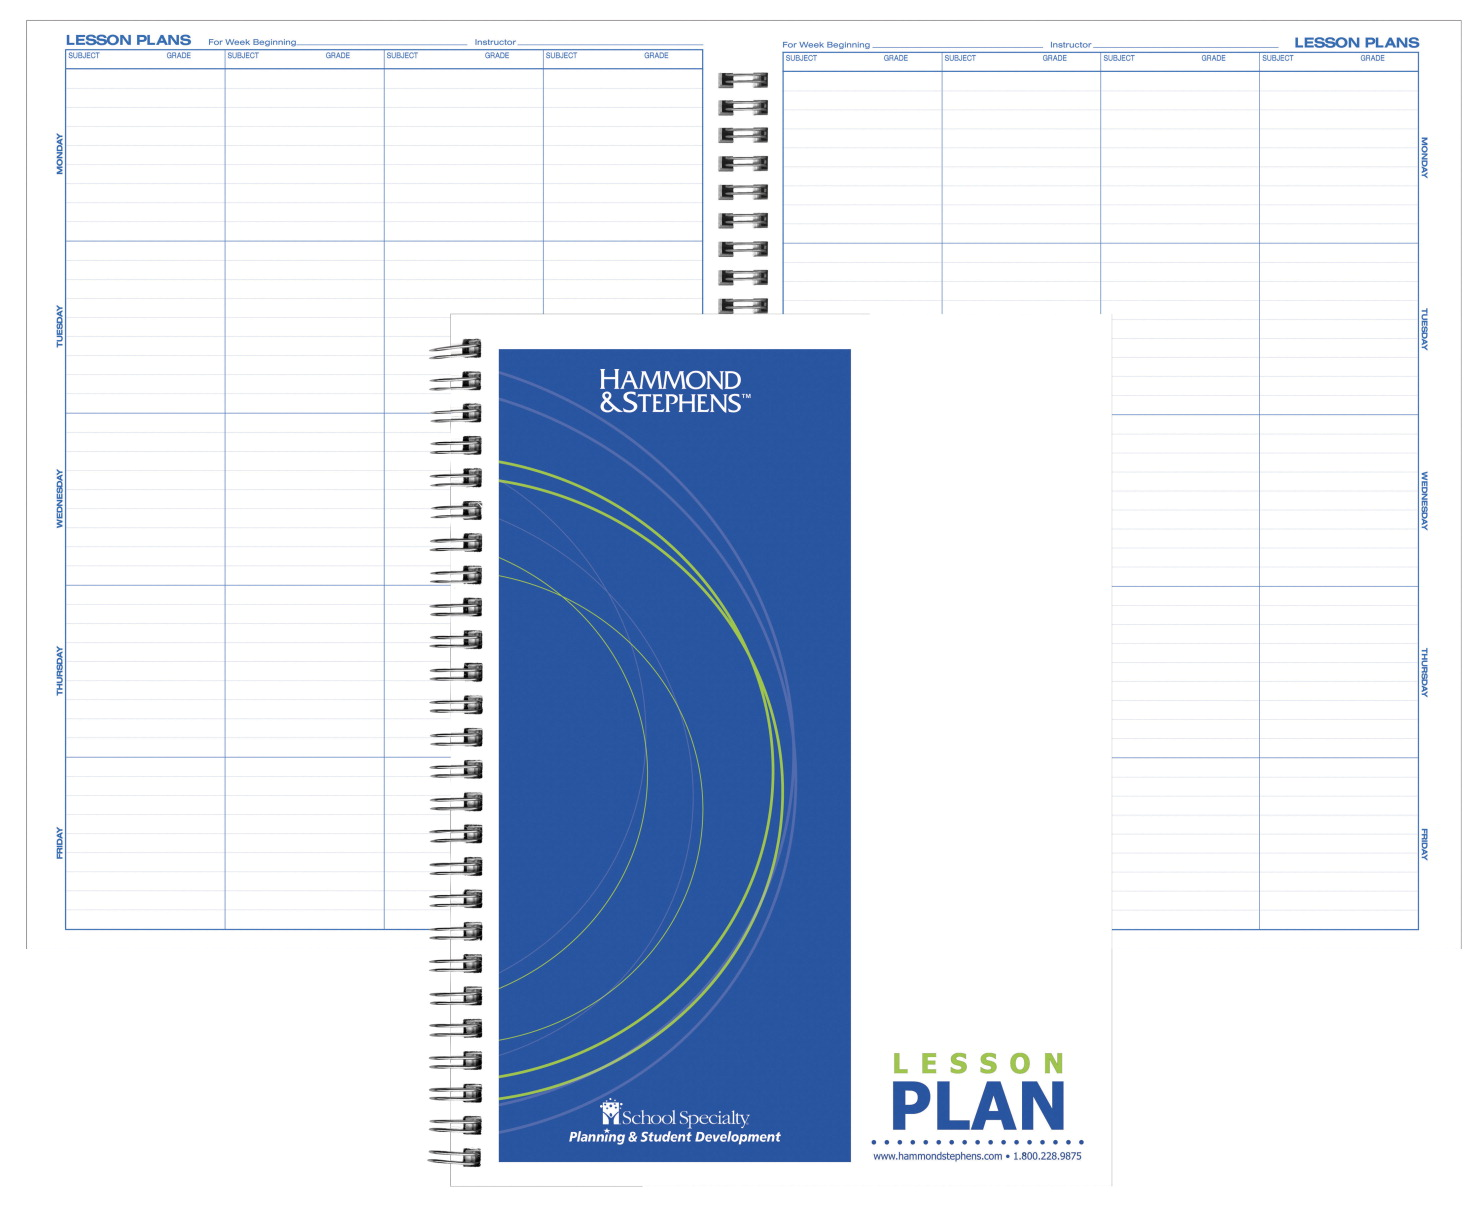 Hammond And Stephens 8 Subject Duplicate 40 Week Lesson Plan Book, 9-1/4 x 12-1/4 Inches